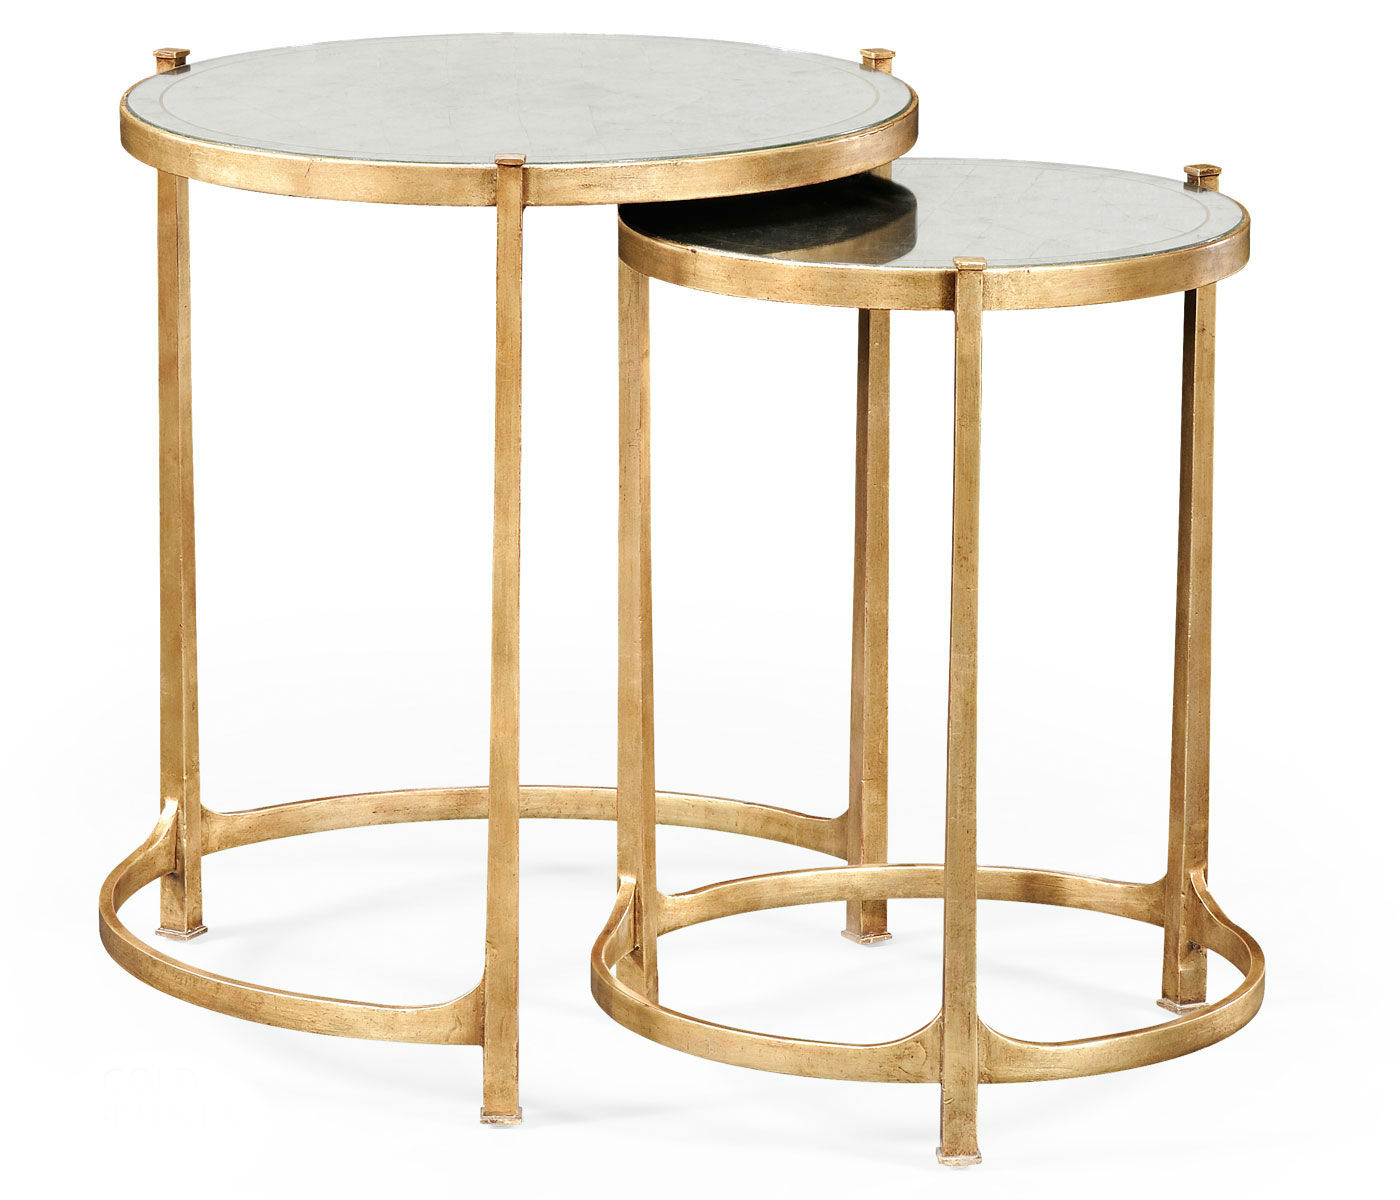 nesting tables gold side table small accent elegant tall antiqued mirrored gilt partner end console coffee available hospitality with drawers reclaimed trestle counter height